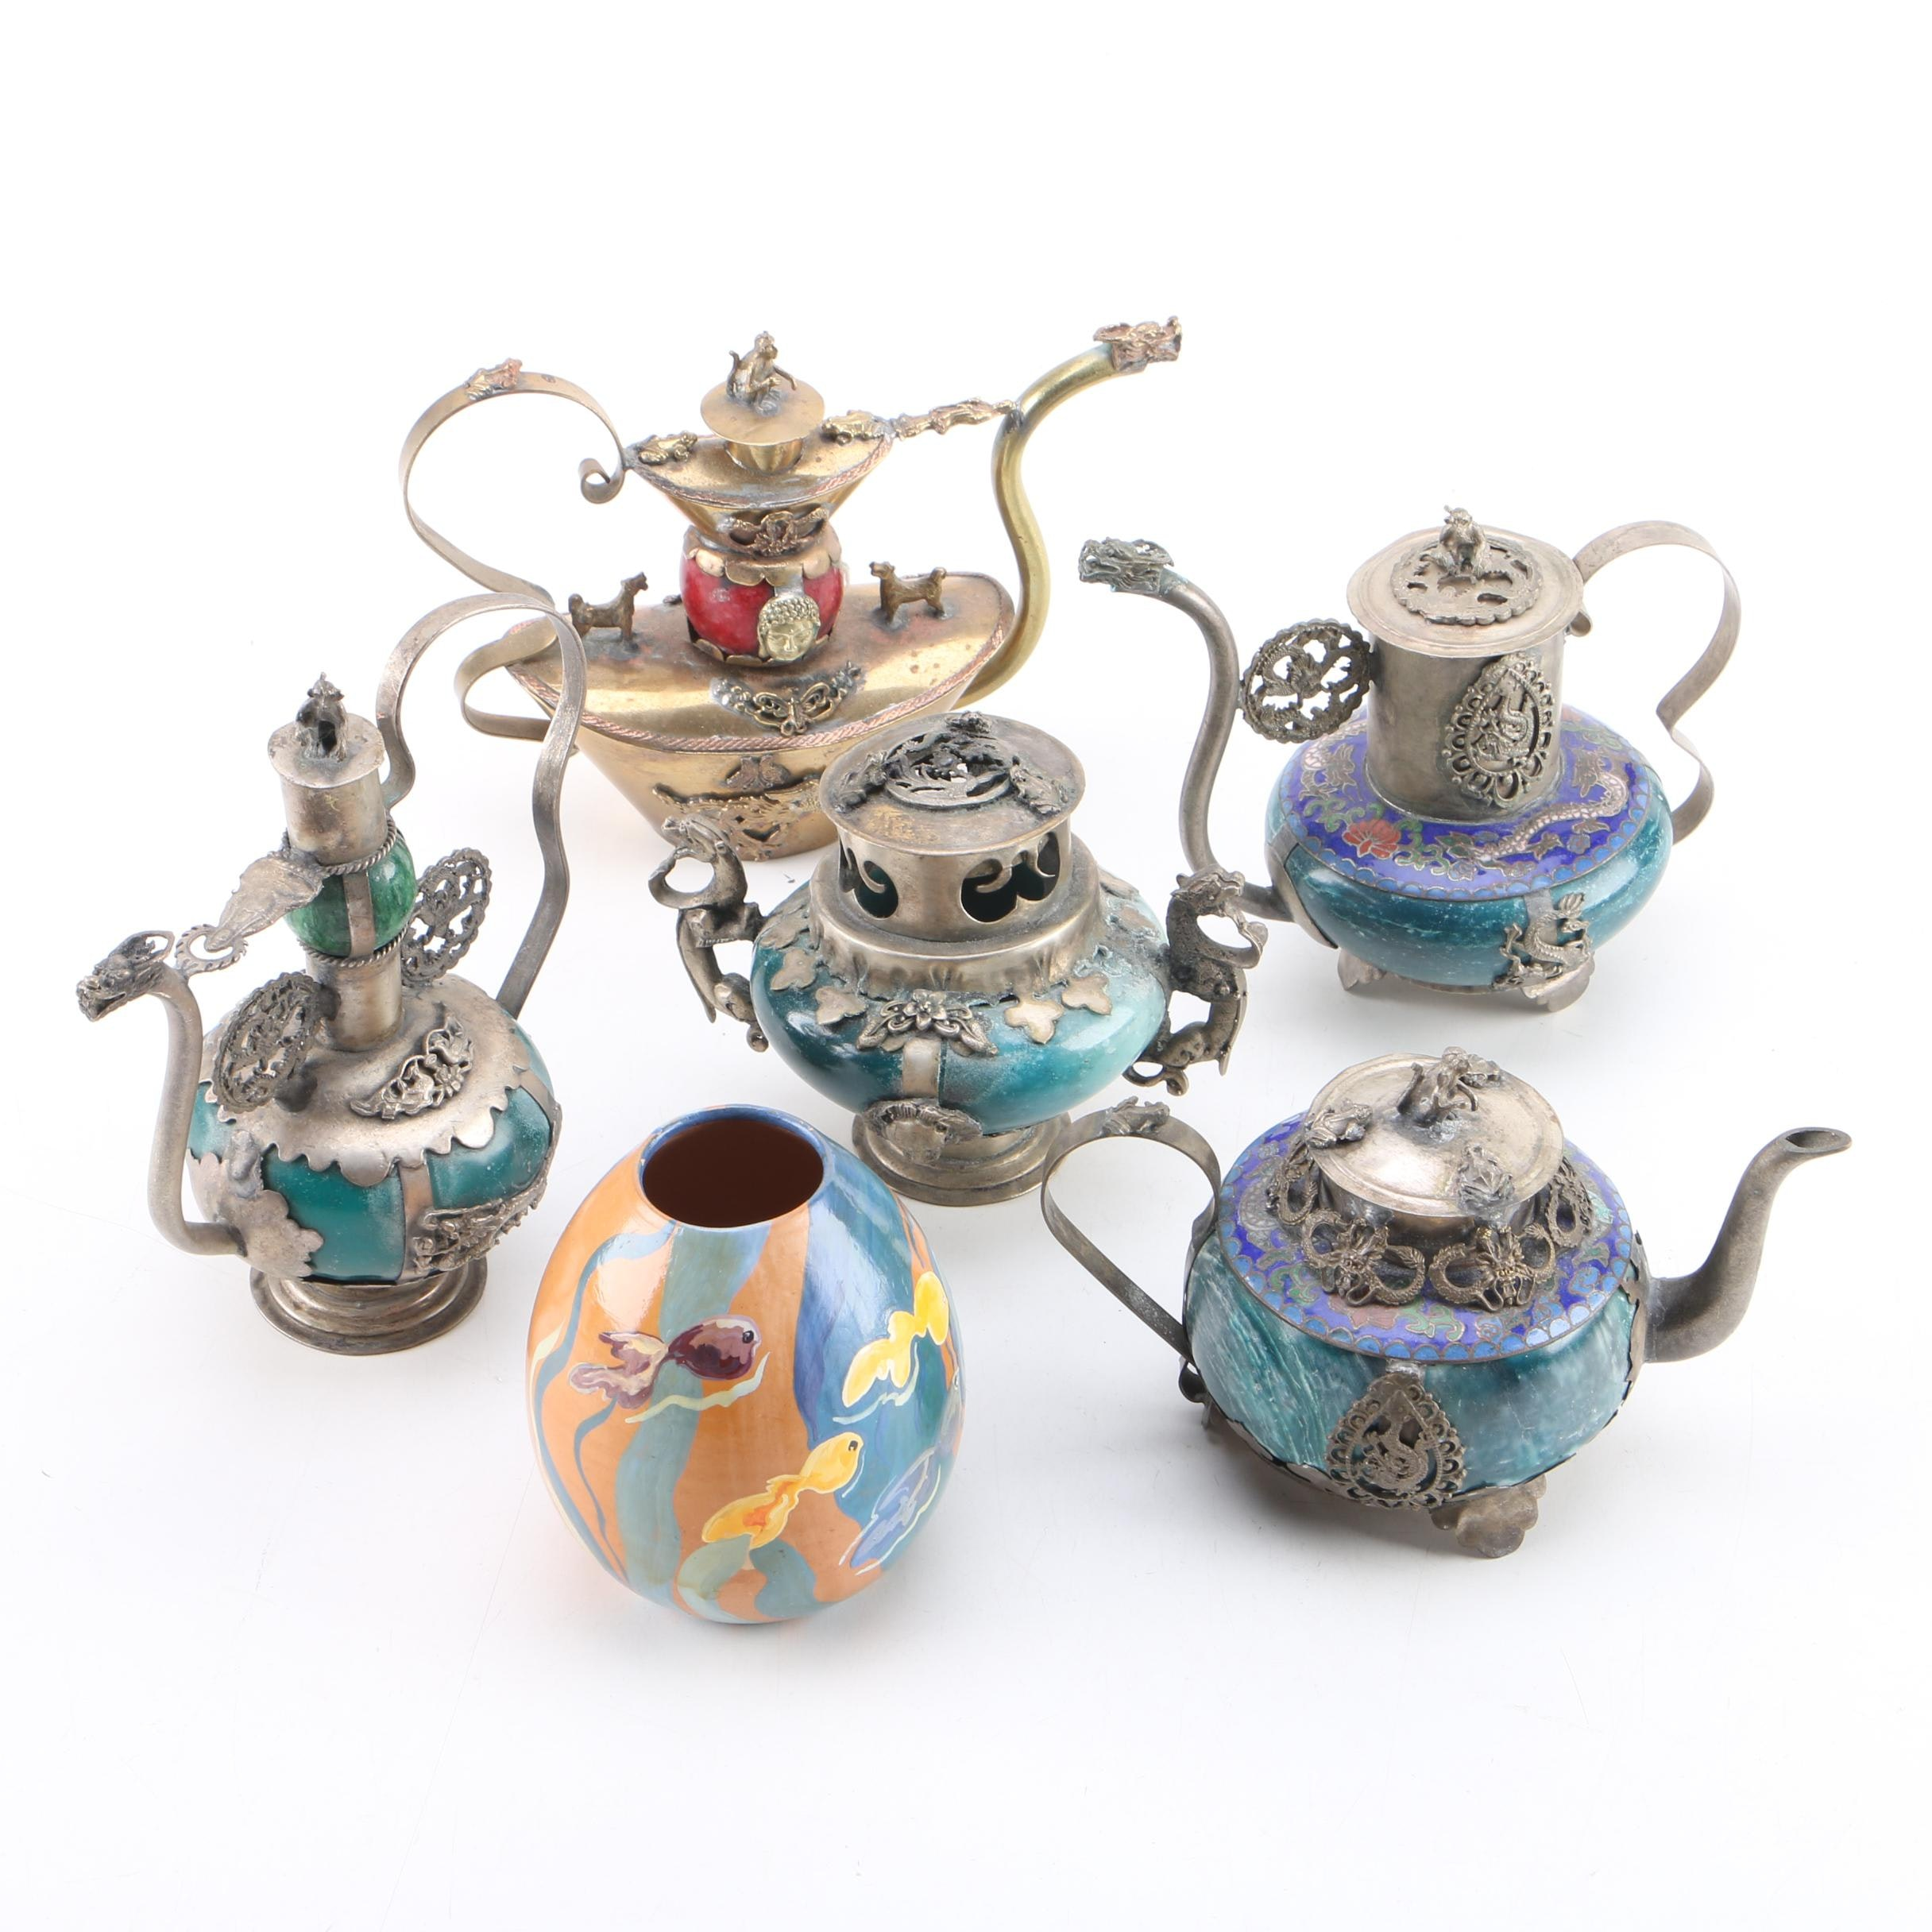 Chinese and Tibetan Incense Burners and Teapots